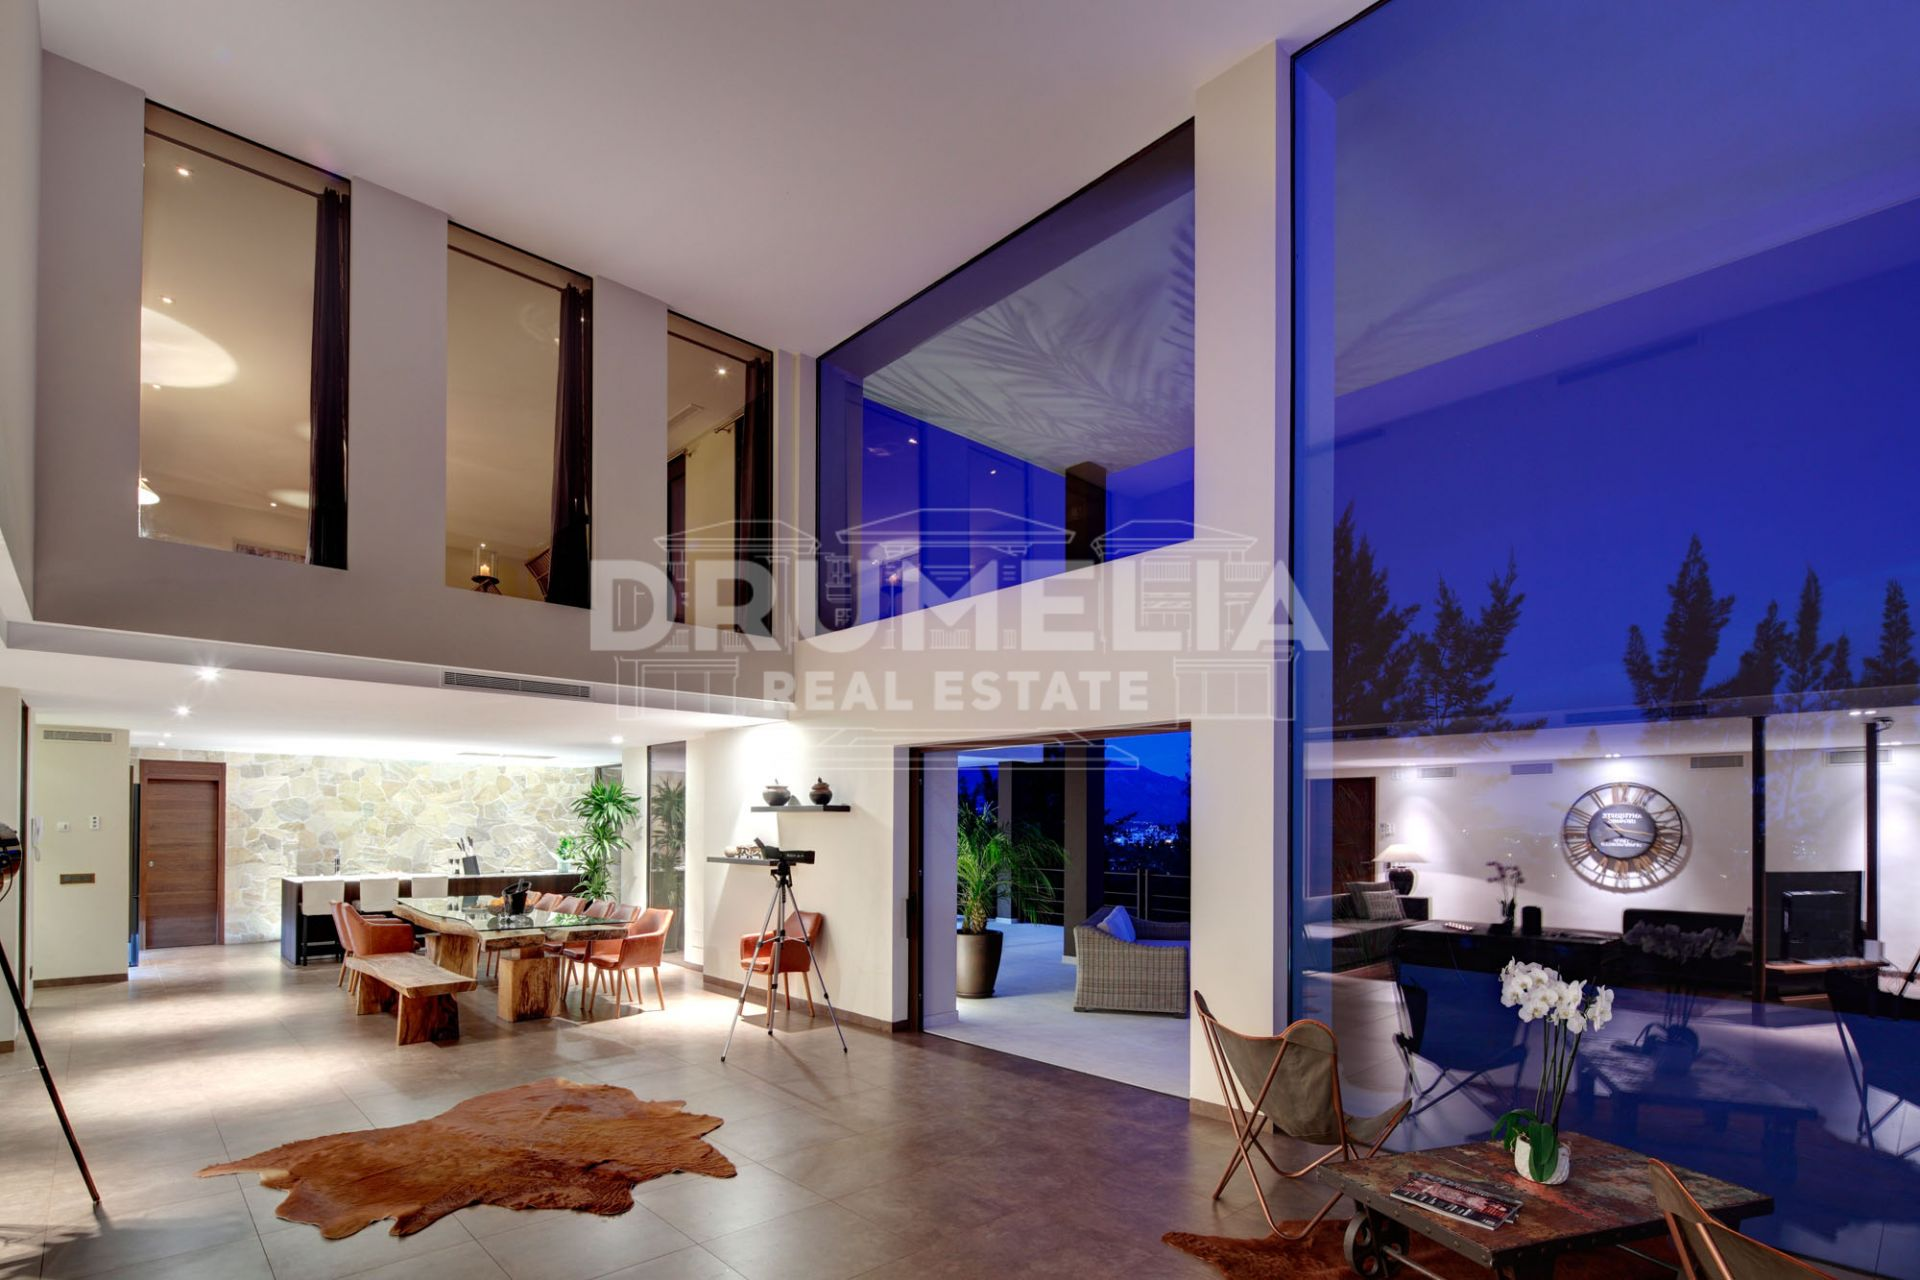 Benahavis, Exceptional Frontline Golf Modern Luxury Villa with Stunning Panoramic Views, La Alqueria, Benahavis.